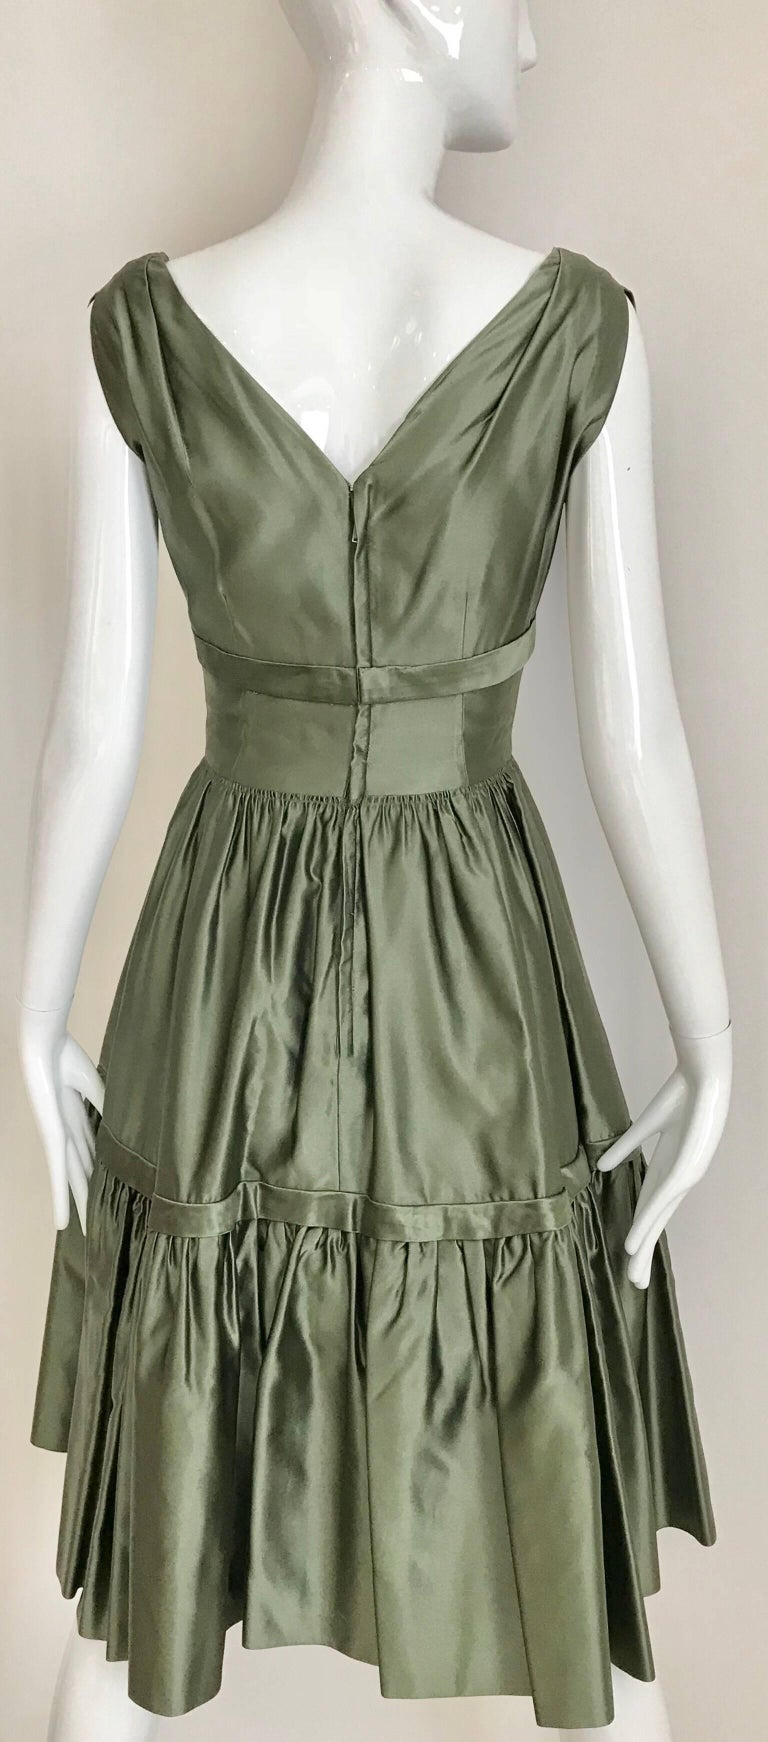 Christian Dior Green Silk Cocktail Dress, 1950s  For Sale 1